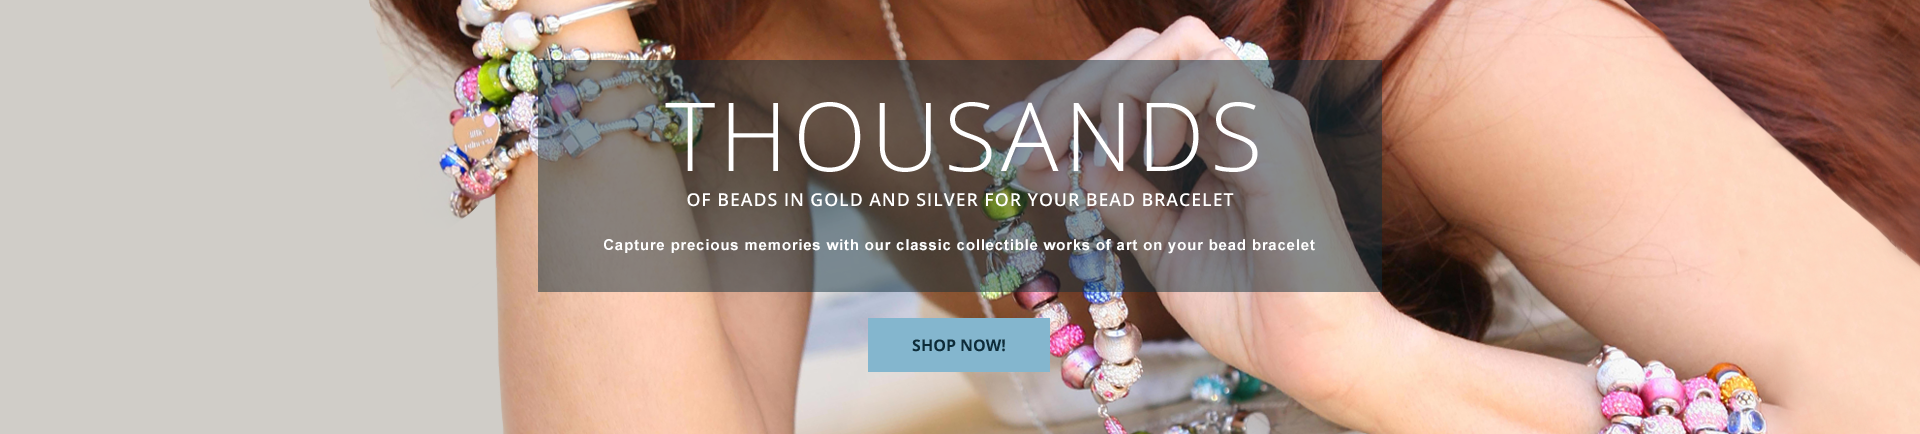 Classic Beads - thousands of Beads!